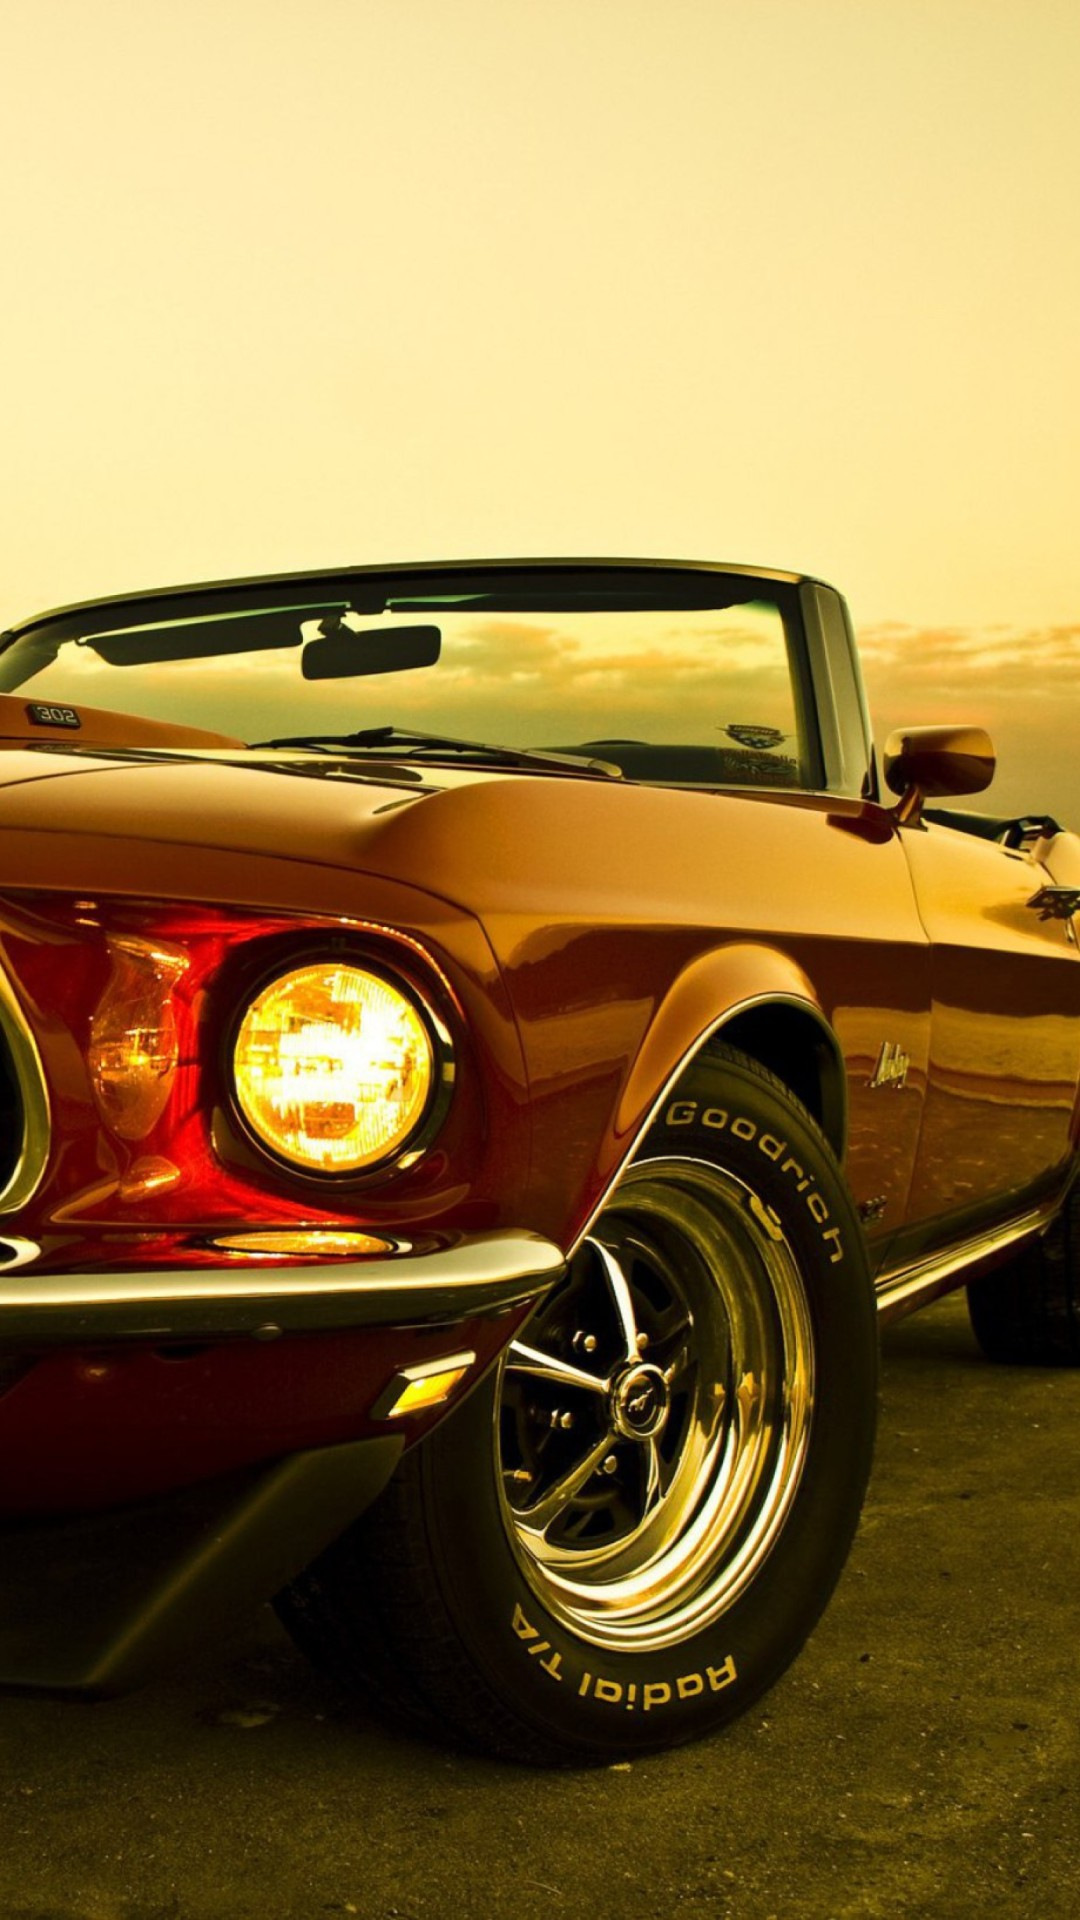 mustang ford 1969 wallpapers iphone 1080 1920 pixelstalk tablet